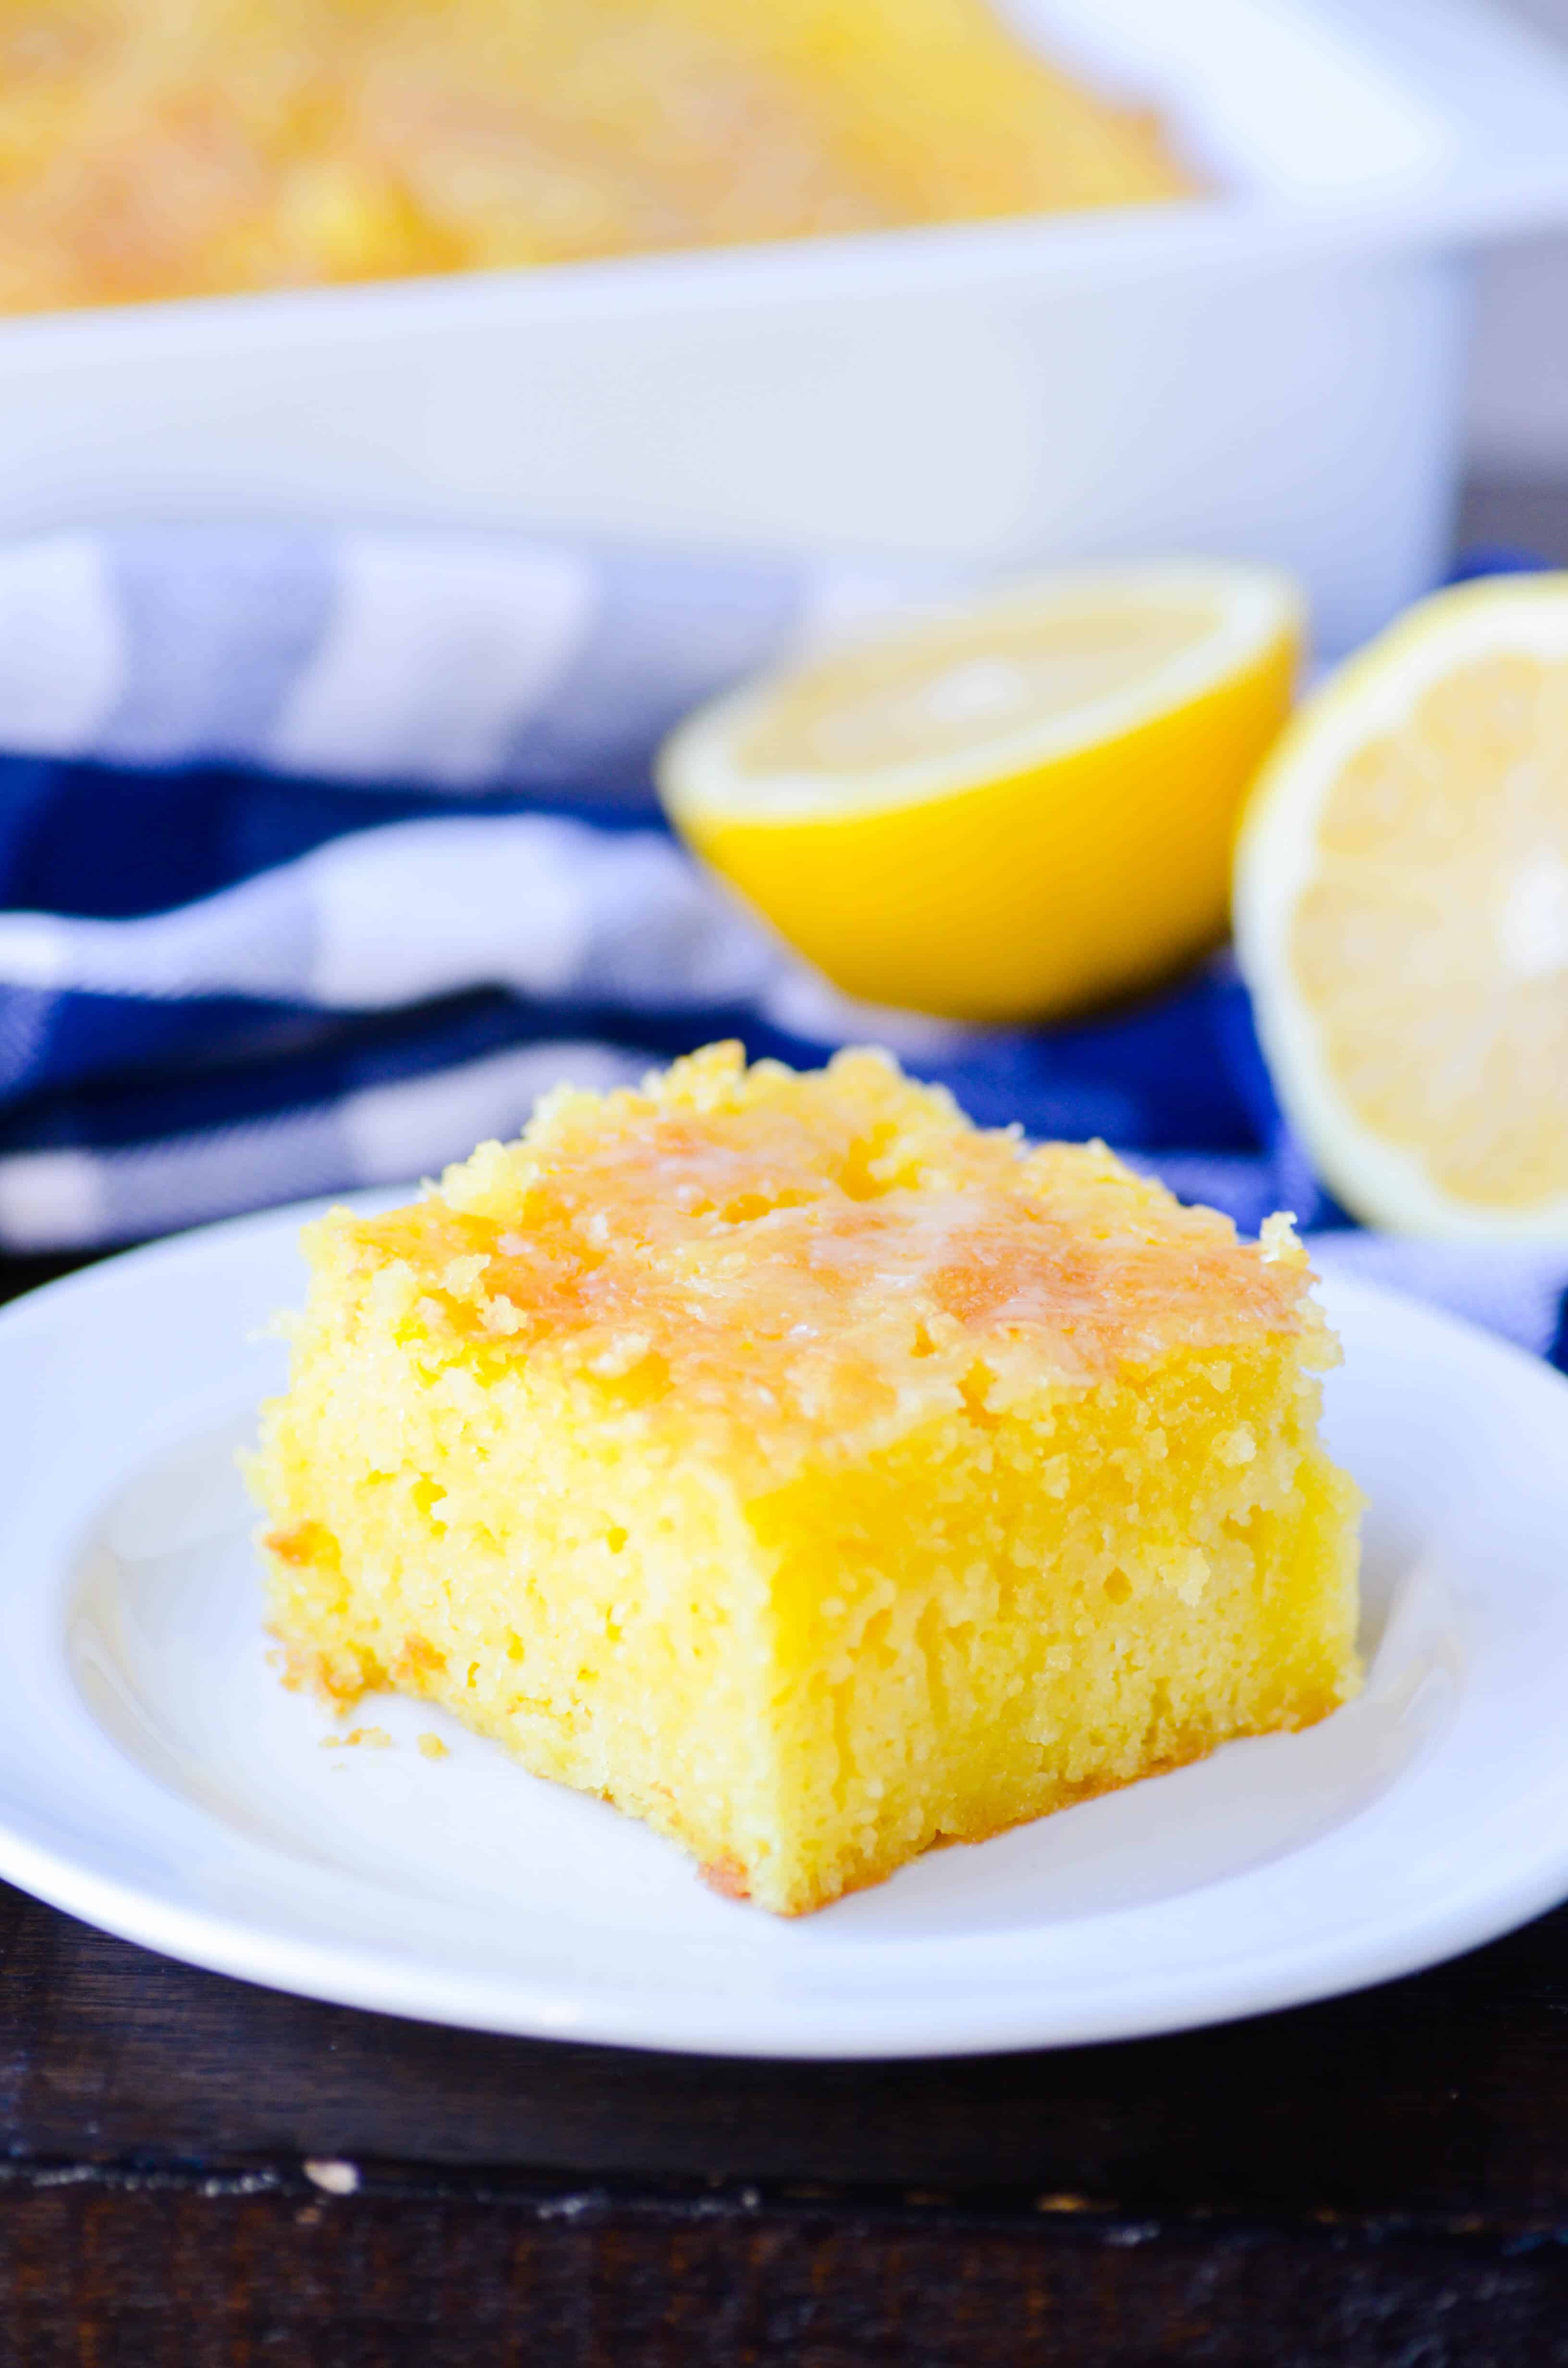 Lemon Jell-O Cake